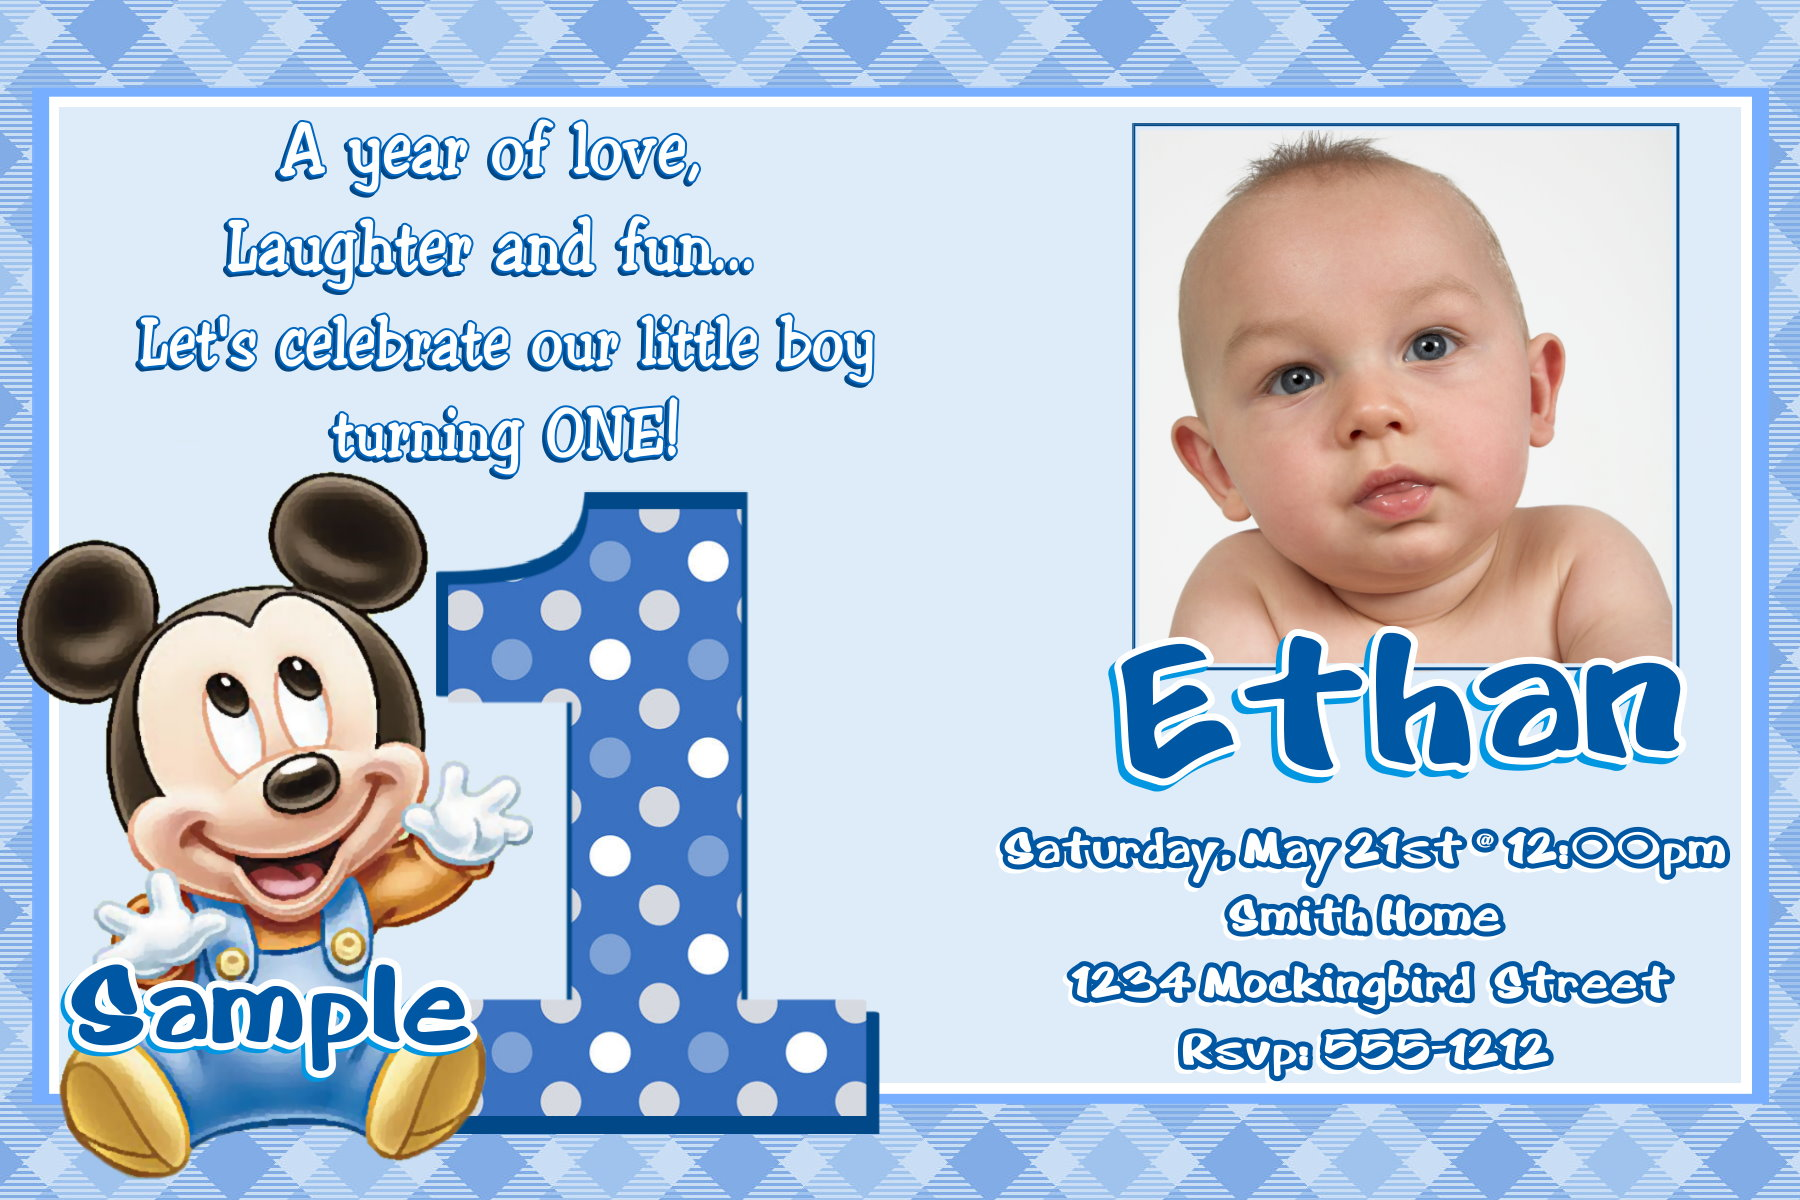 birthday invitation model ; sample-birthday-invitation-and-the-invitations-of-the-Birthday-Invitation-Templates-to-the-party-sketch-with-cool-idea-5